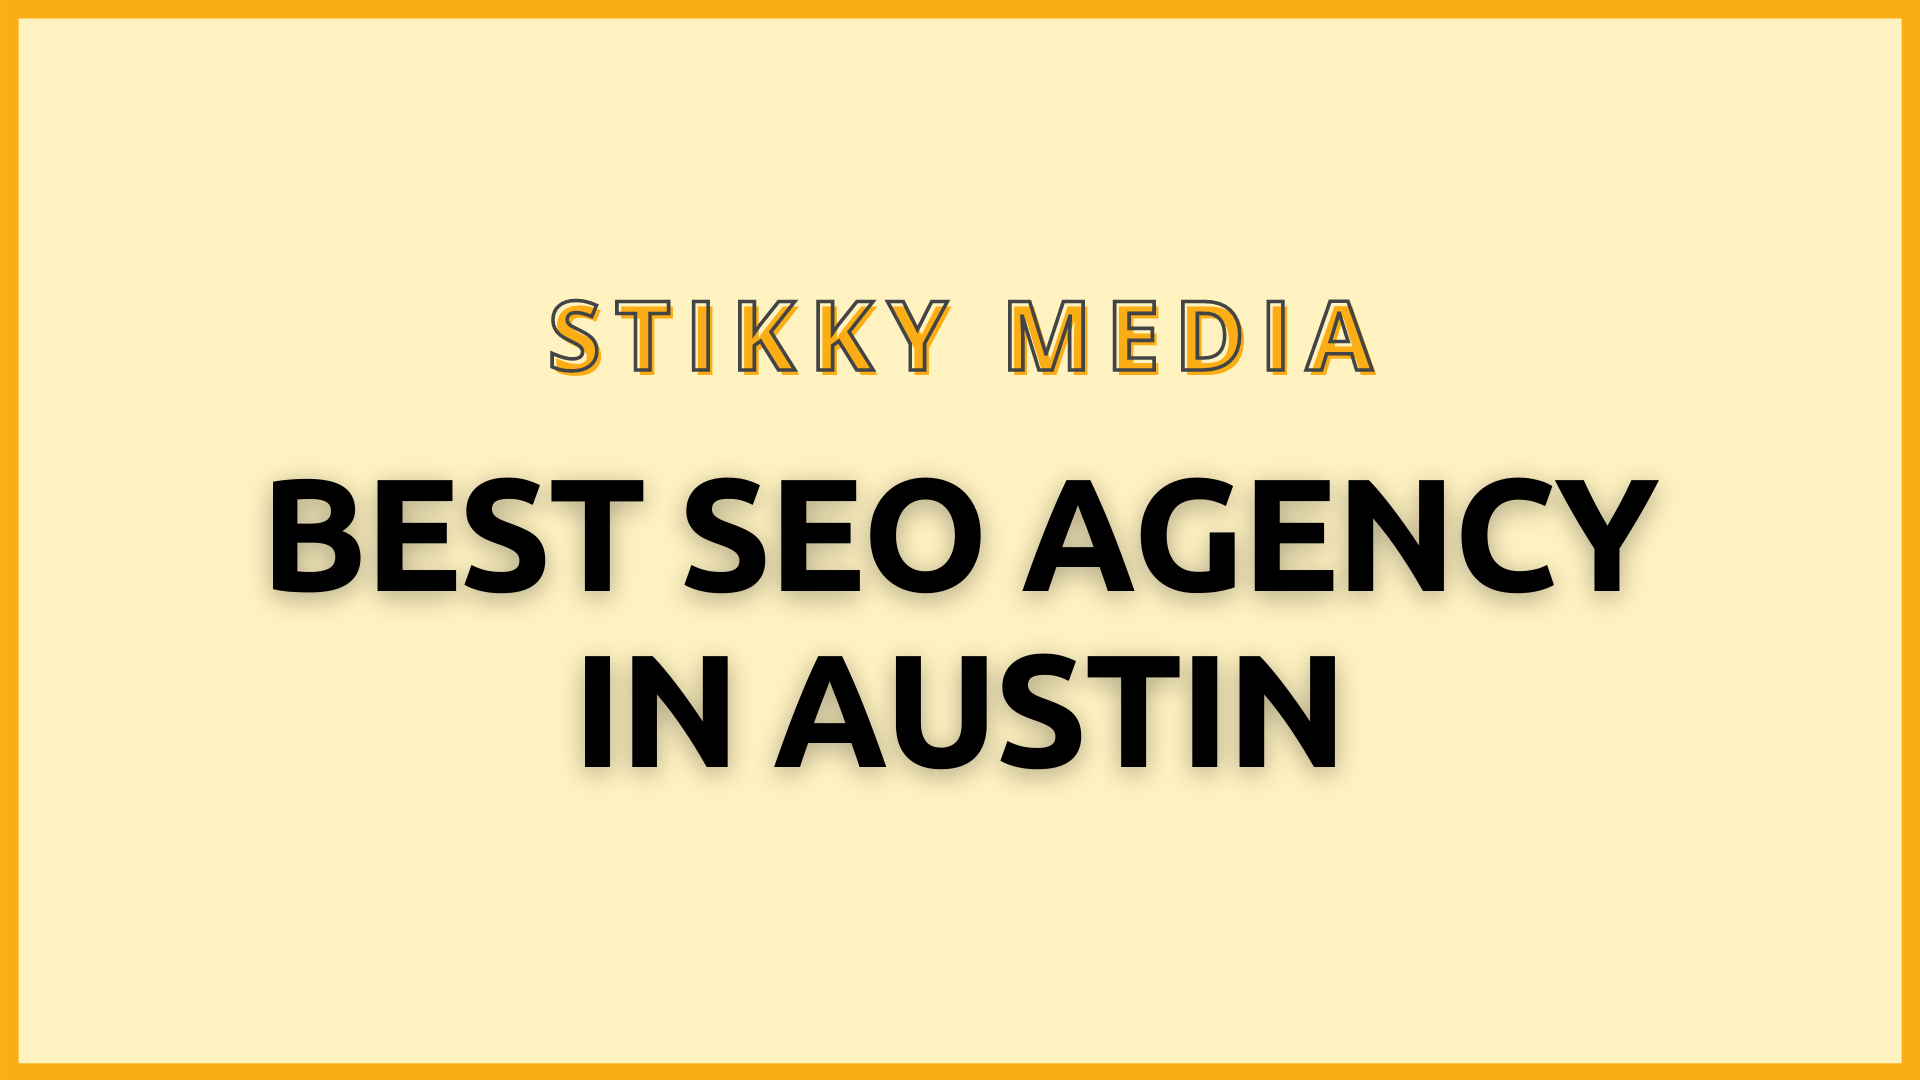 SEO services in Austin - Stikky Media